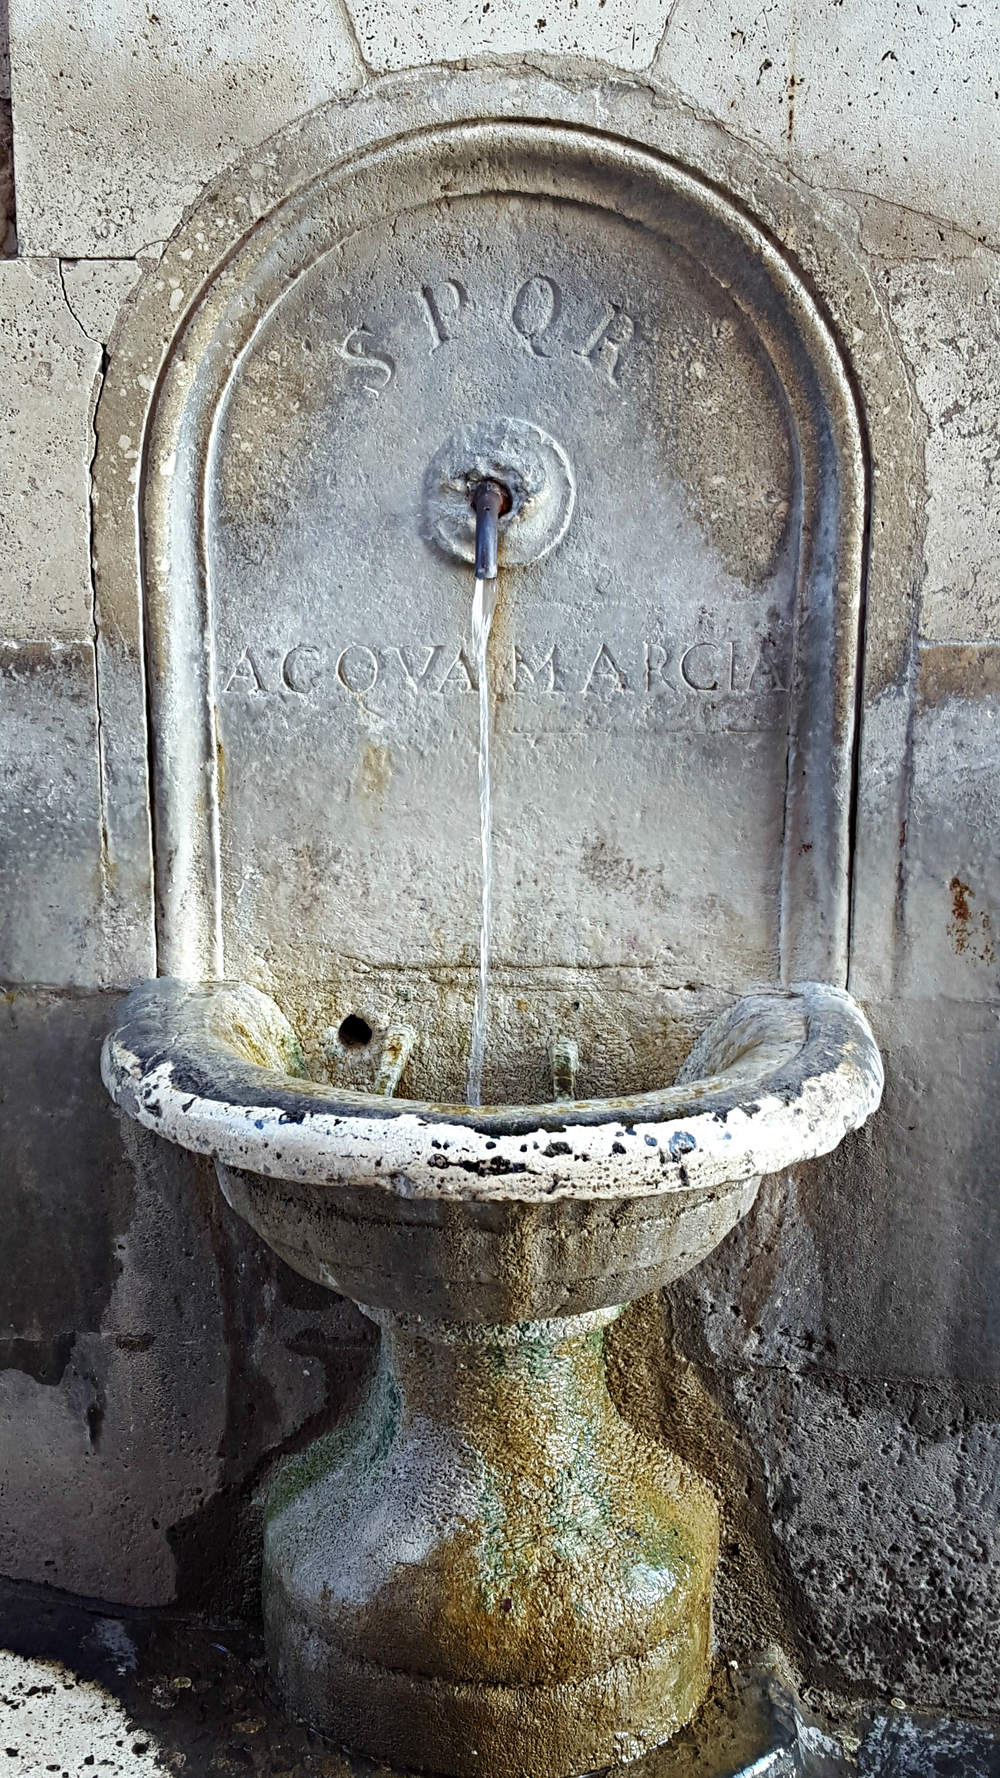 Fresh, clean, free water on tap in Rome. Literally.